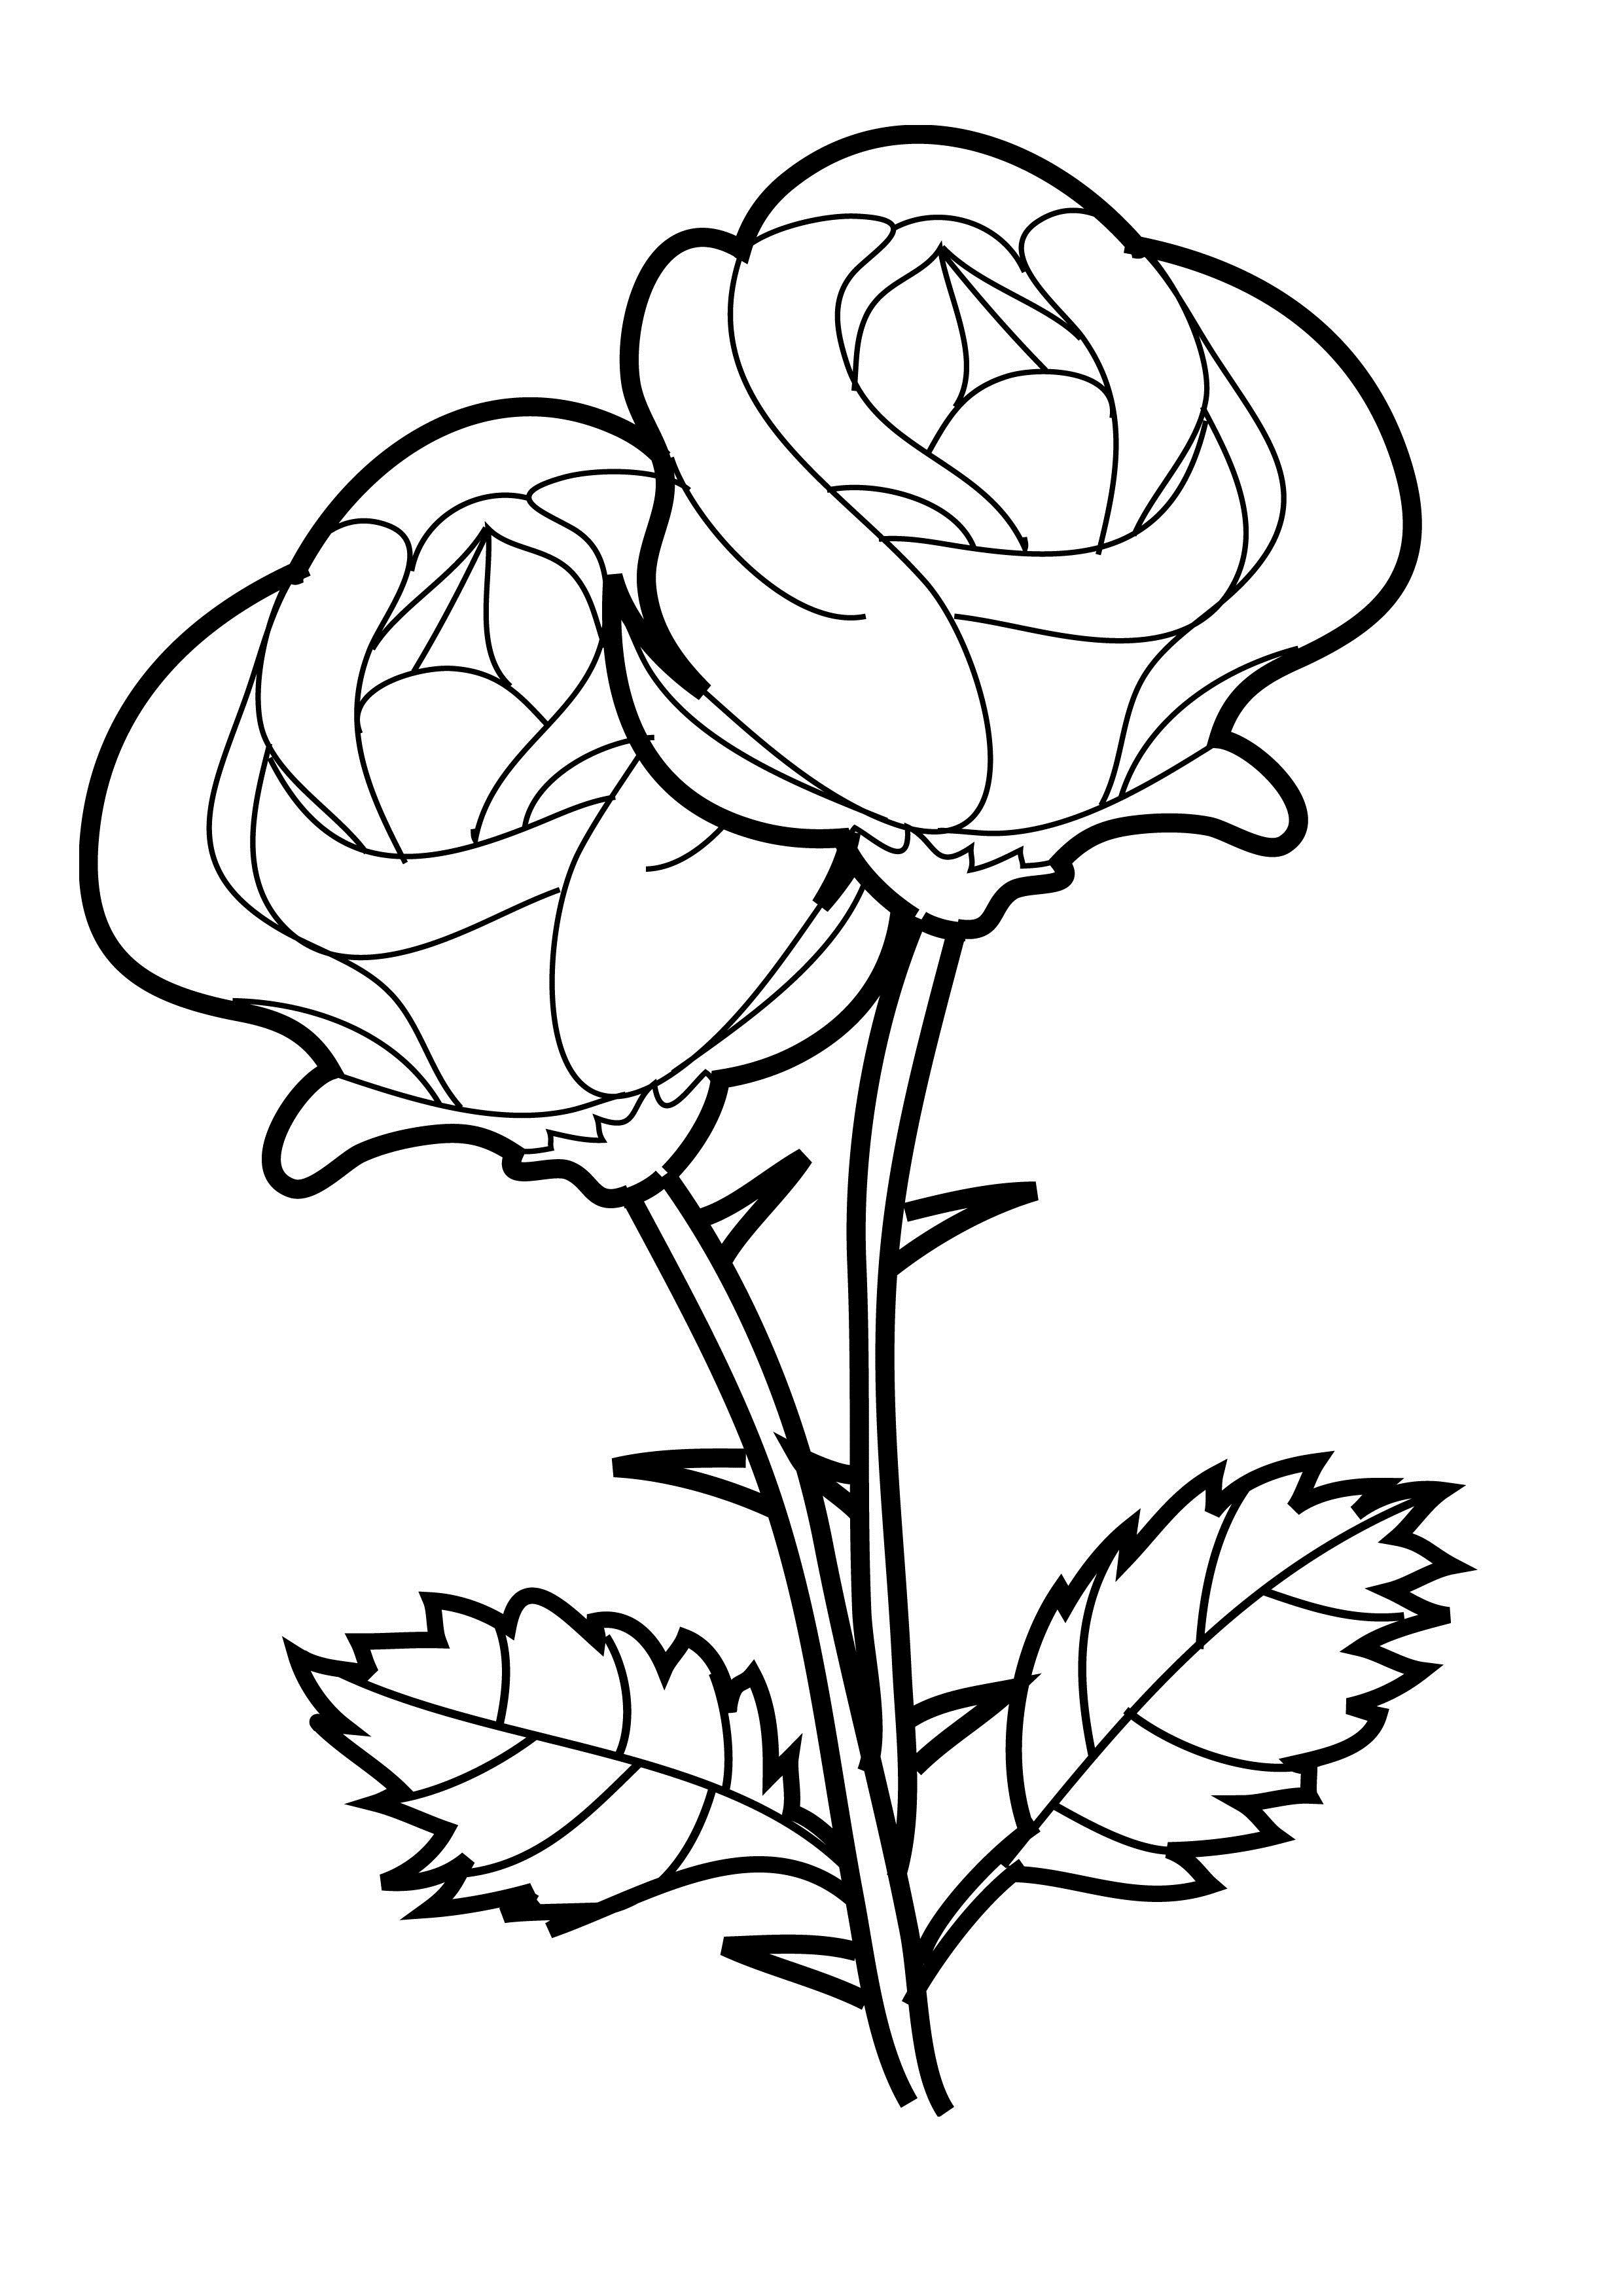 rose colouring in rose color clipart 20 free cliparts download images on colouring rose in